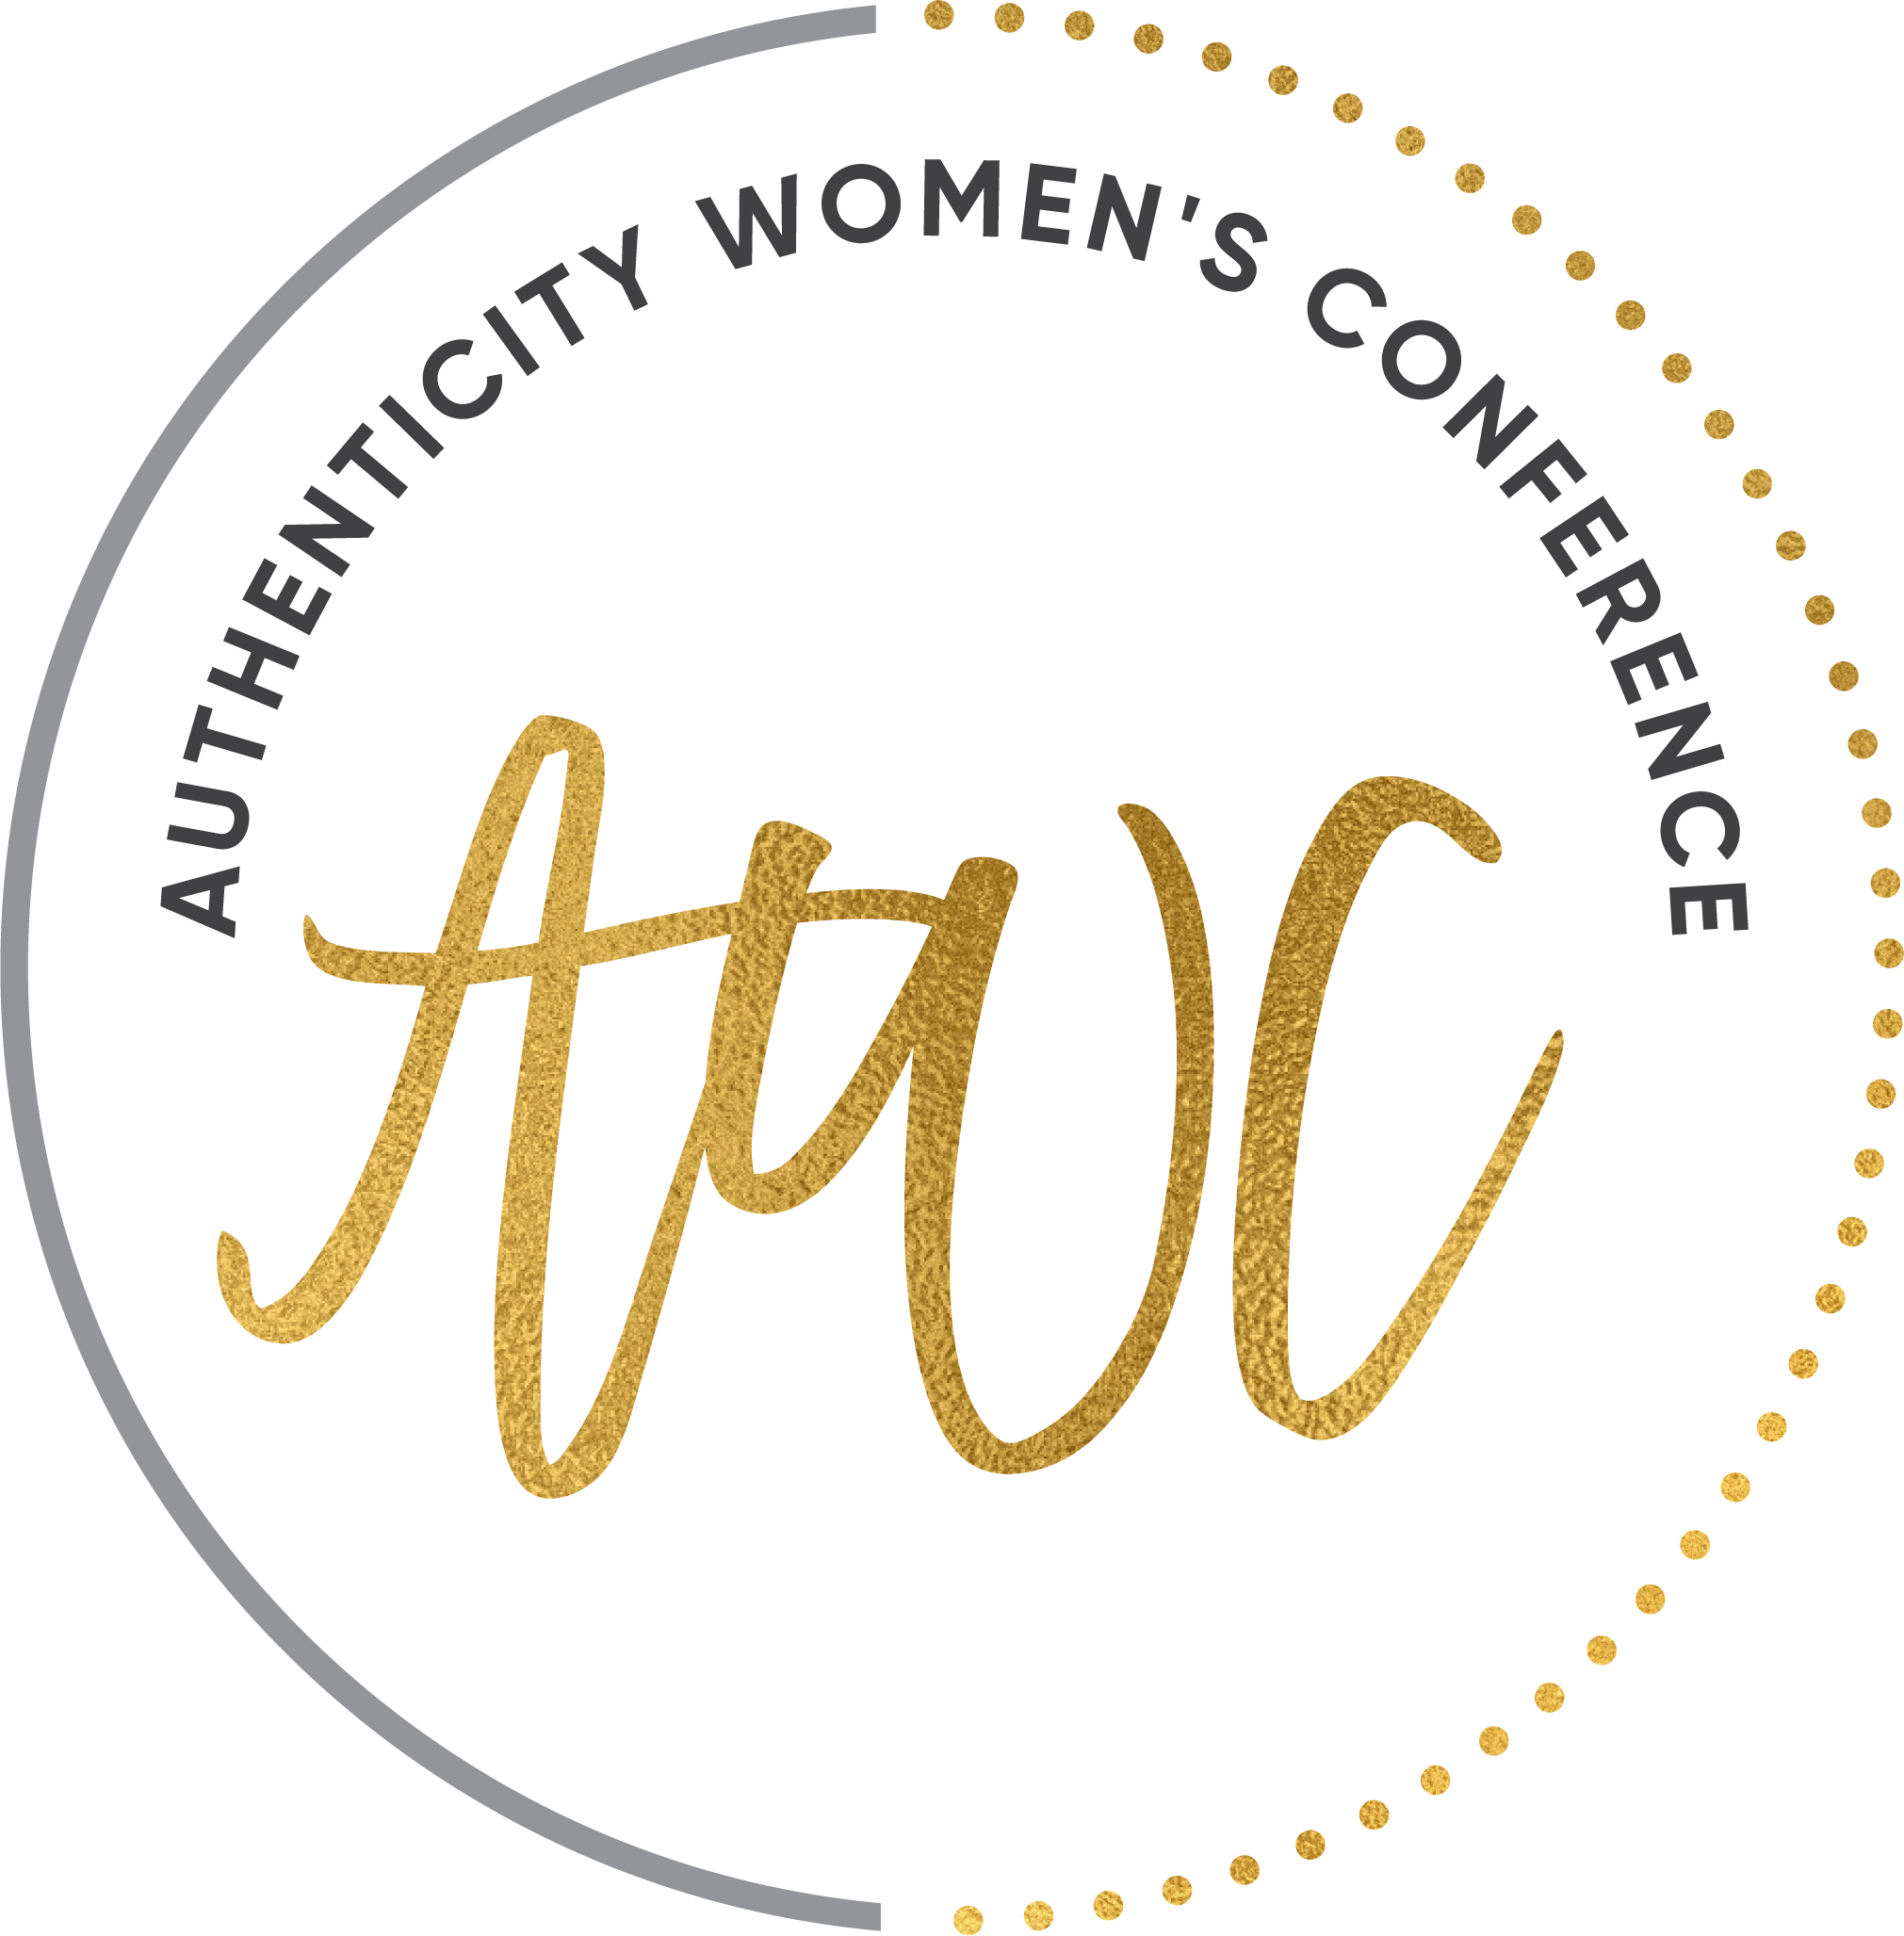 Authenticity Conference